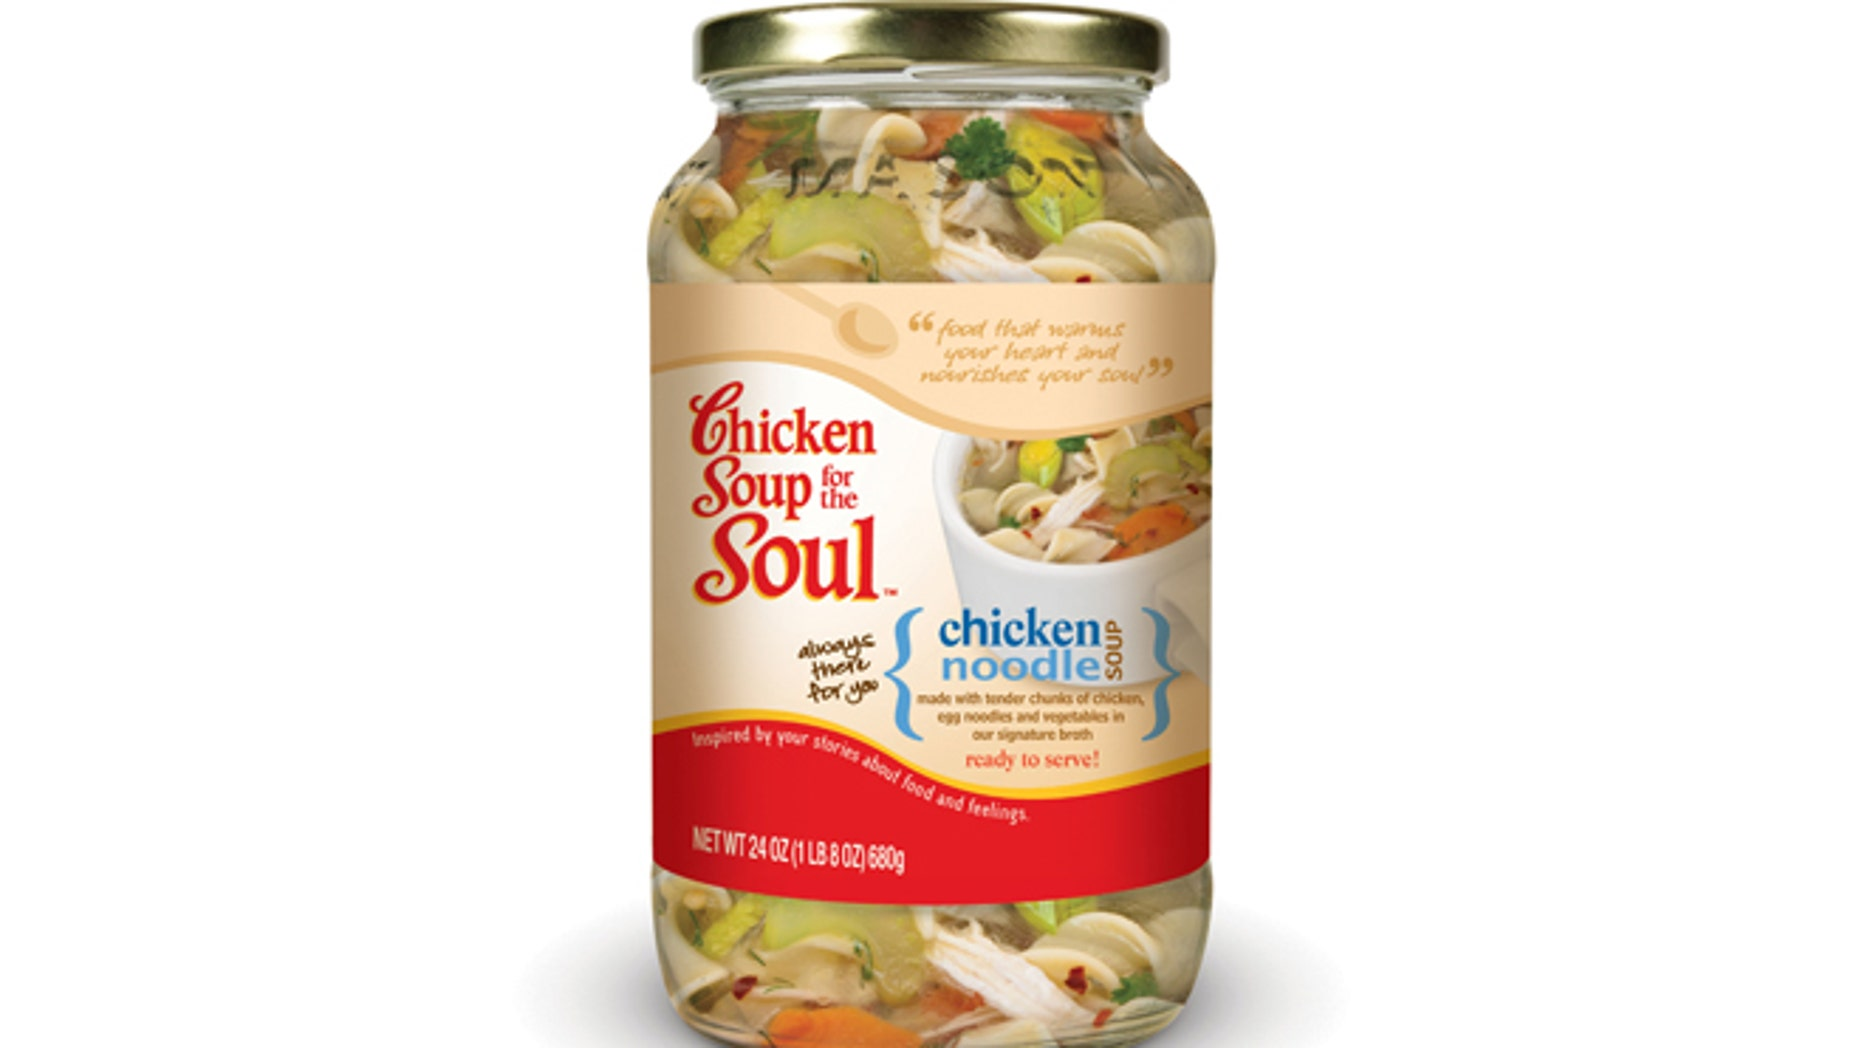 Chicken Noodle Soup.  (PRNewsFoto/Chicken Soup for the Soul Foods LLC)